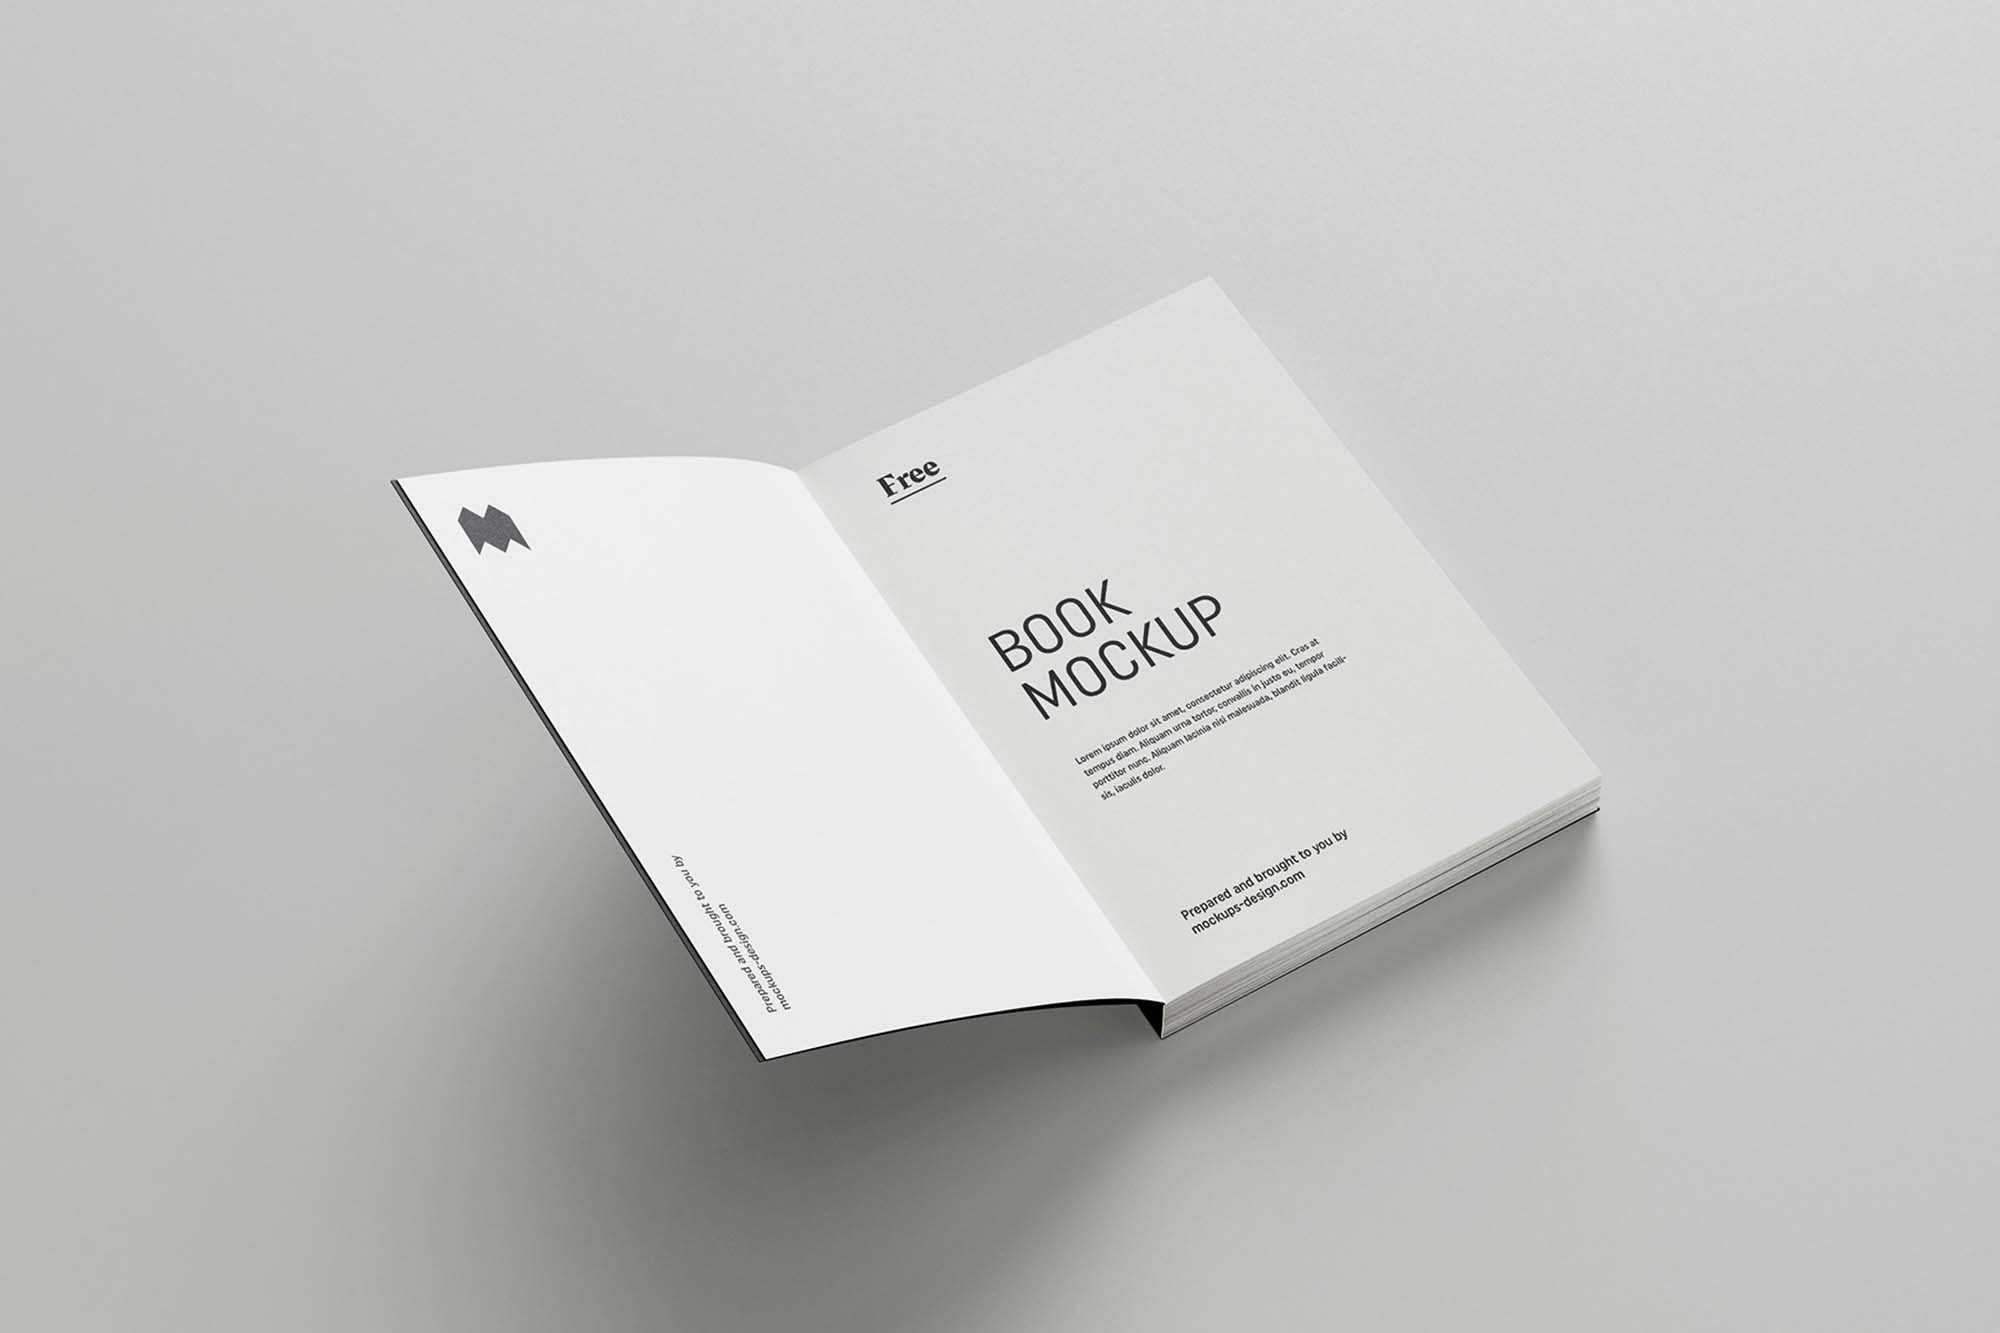 Softcover Book Mockup 2